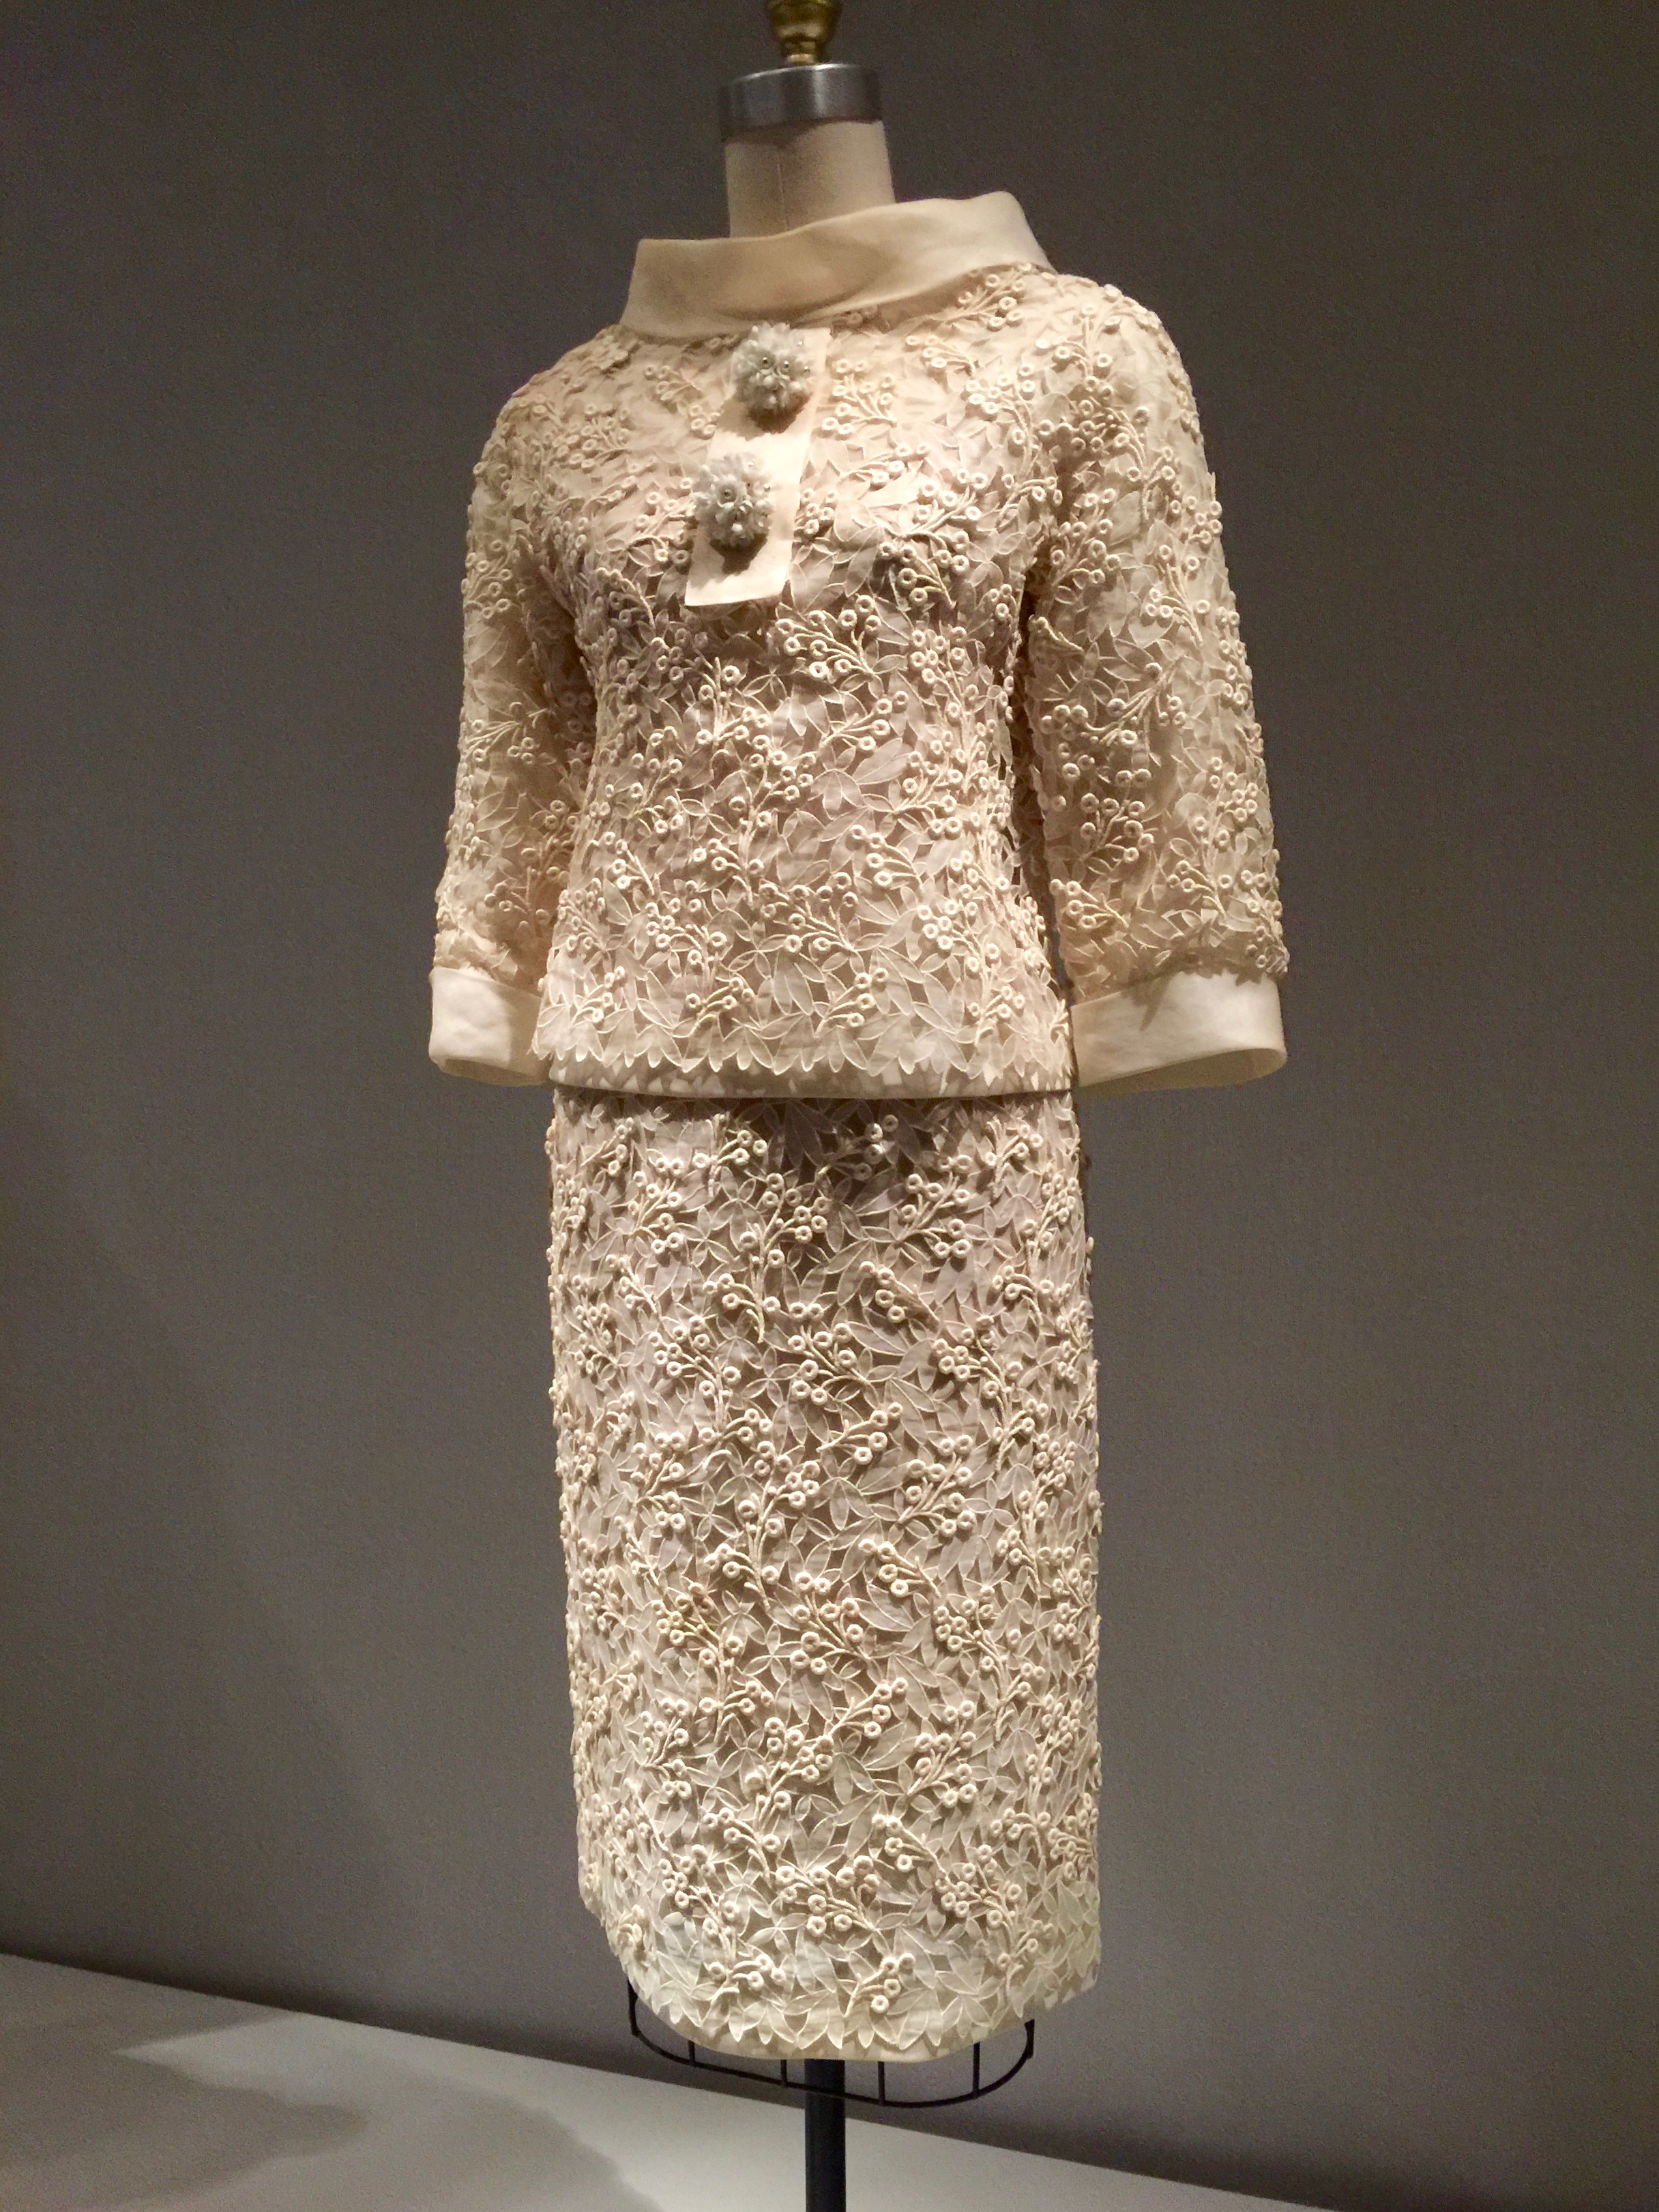 HOUSE OF DIOR, Christian Dior SUIT, Spring/Summer 1963, haute couture  Machine-sewn white cotton organdy with overlay of machine-embroidered cutwork hand-stitched with machine-embroidered guipure lace; hand-finished